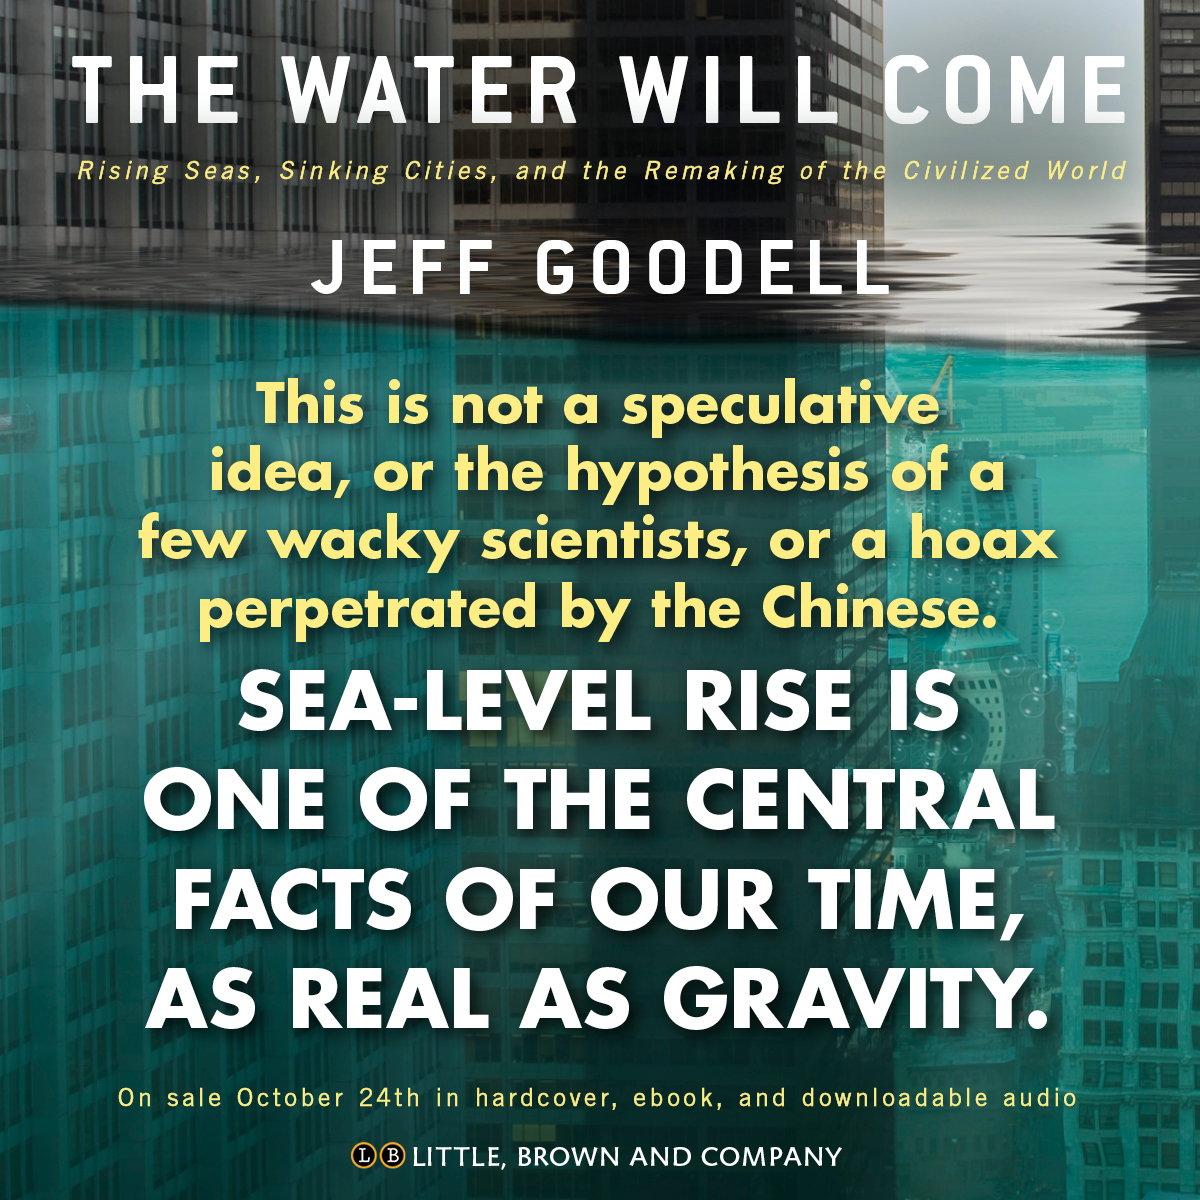 The water will come by jeff goodell hachette book group hachette graphics fandeluxe Choice Image